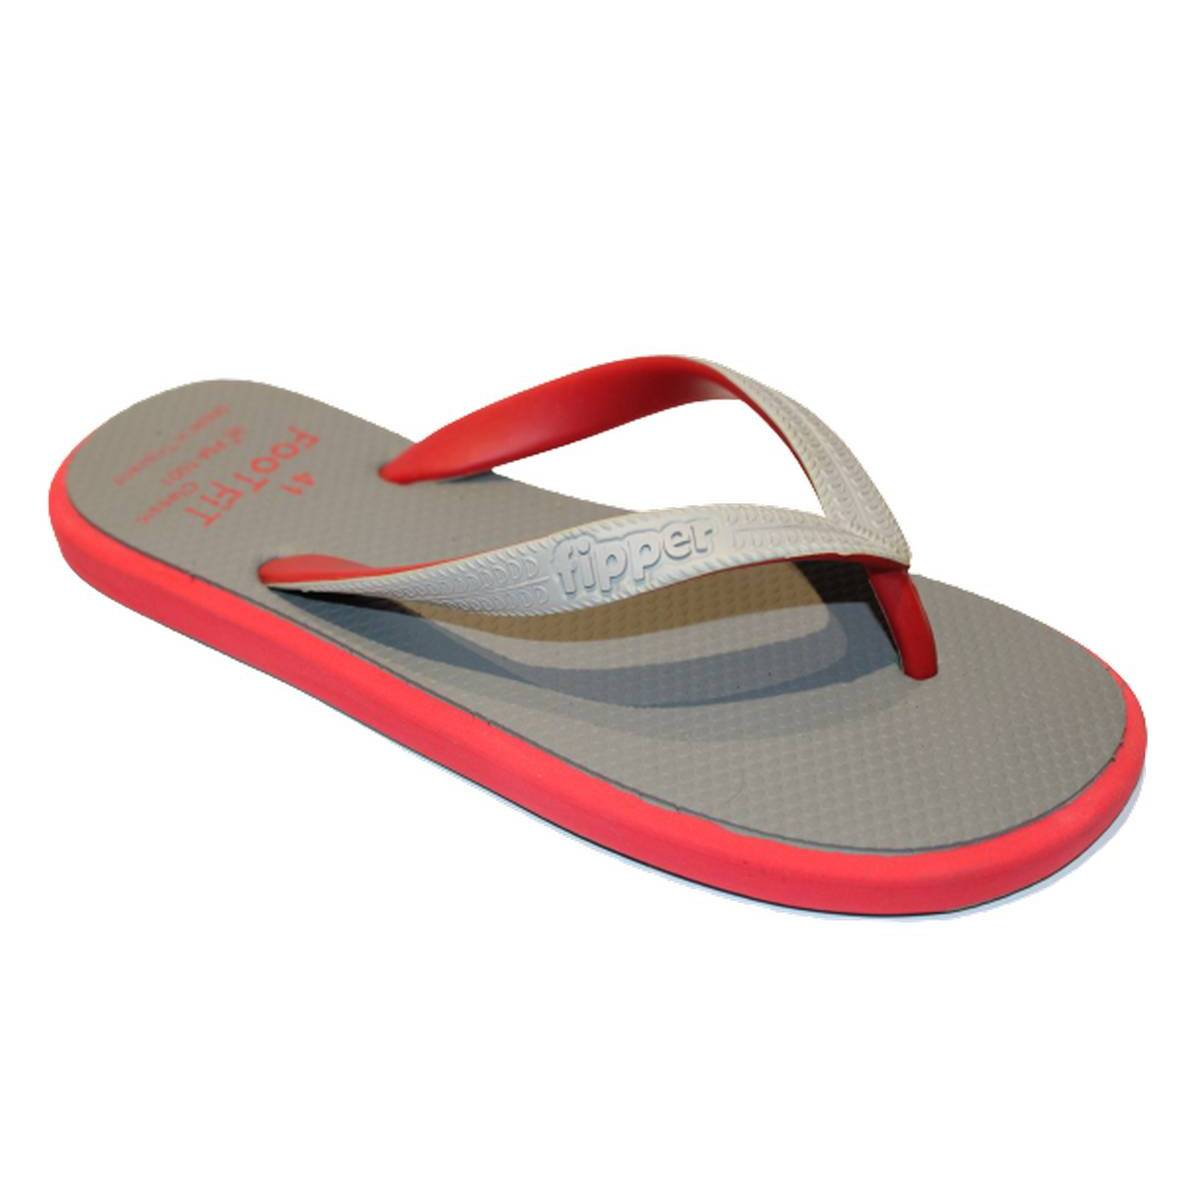 FootFit Classic New Arrival Men's Double Padded Flip Flop Slippers FM-1001